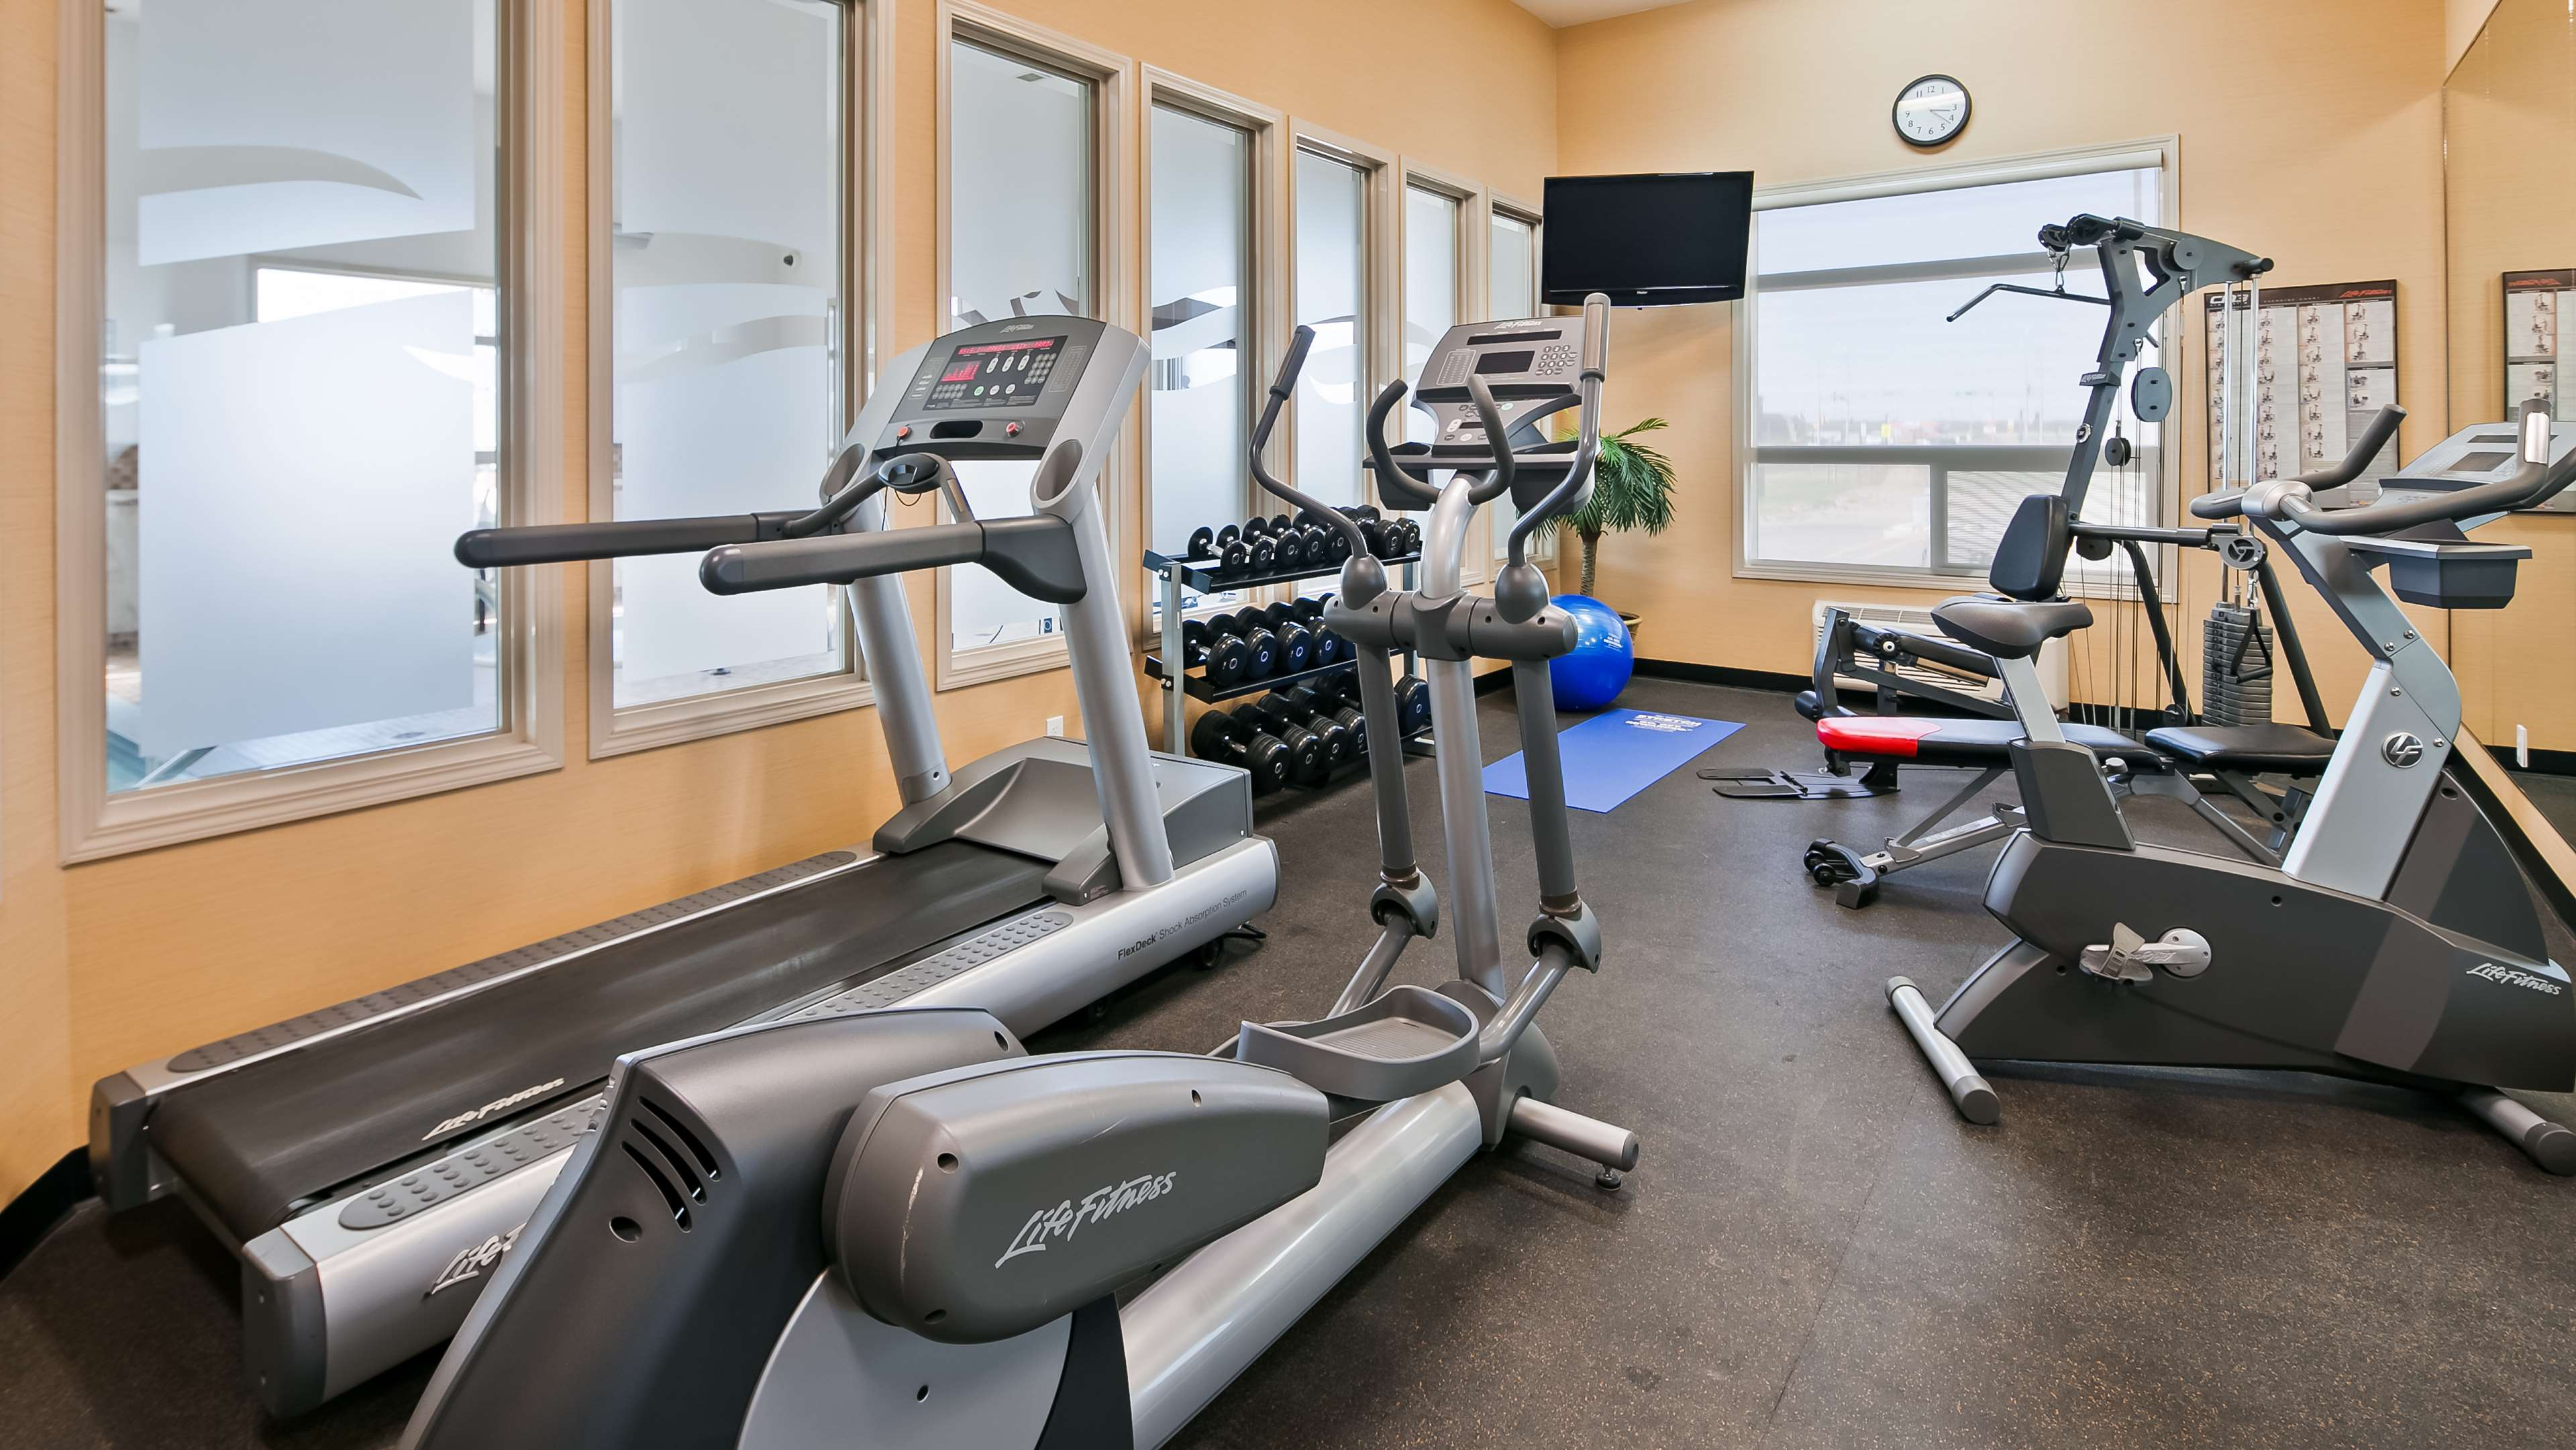 Fit a workout into your busy day dur Best Western Wainwright Inn & Suites Wainwright (780)845-9934